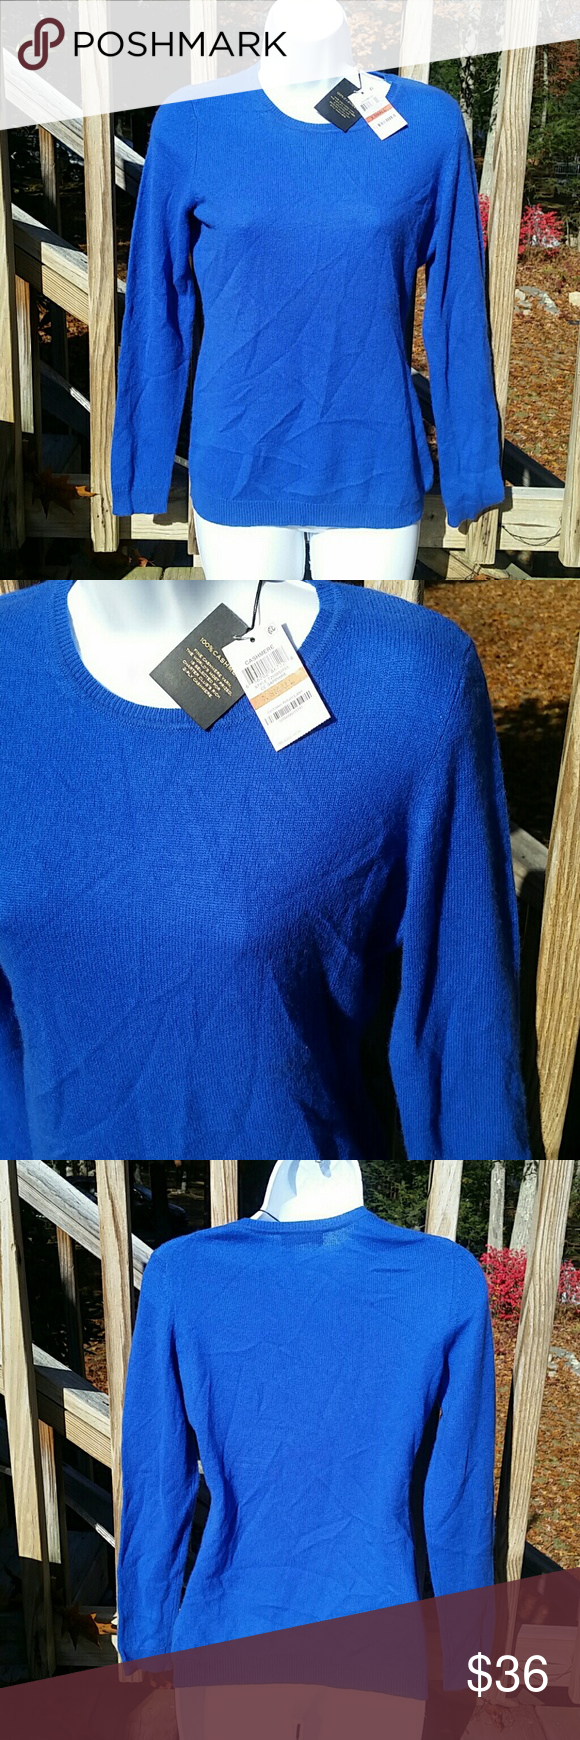 Charter Club Delicious 100% Cashmere Sweater NWT Charter Club Delicious 100% Cashmere Sweater. NWT Size XS  Color: Sapphire  100% Cashmere 2 Ply Style:72000S1893 *Does run a little bigger. Can easily fit up to a Small* 001060 **NO TRADES** **PRICE ABSOLUTELY FIRM** **PRICE ABSOLUTELY FIRM** Charter Club Sweaters Crew & Scoop Necks